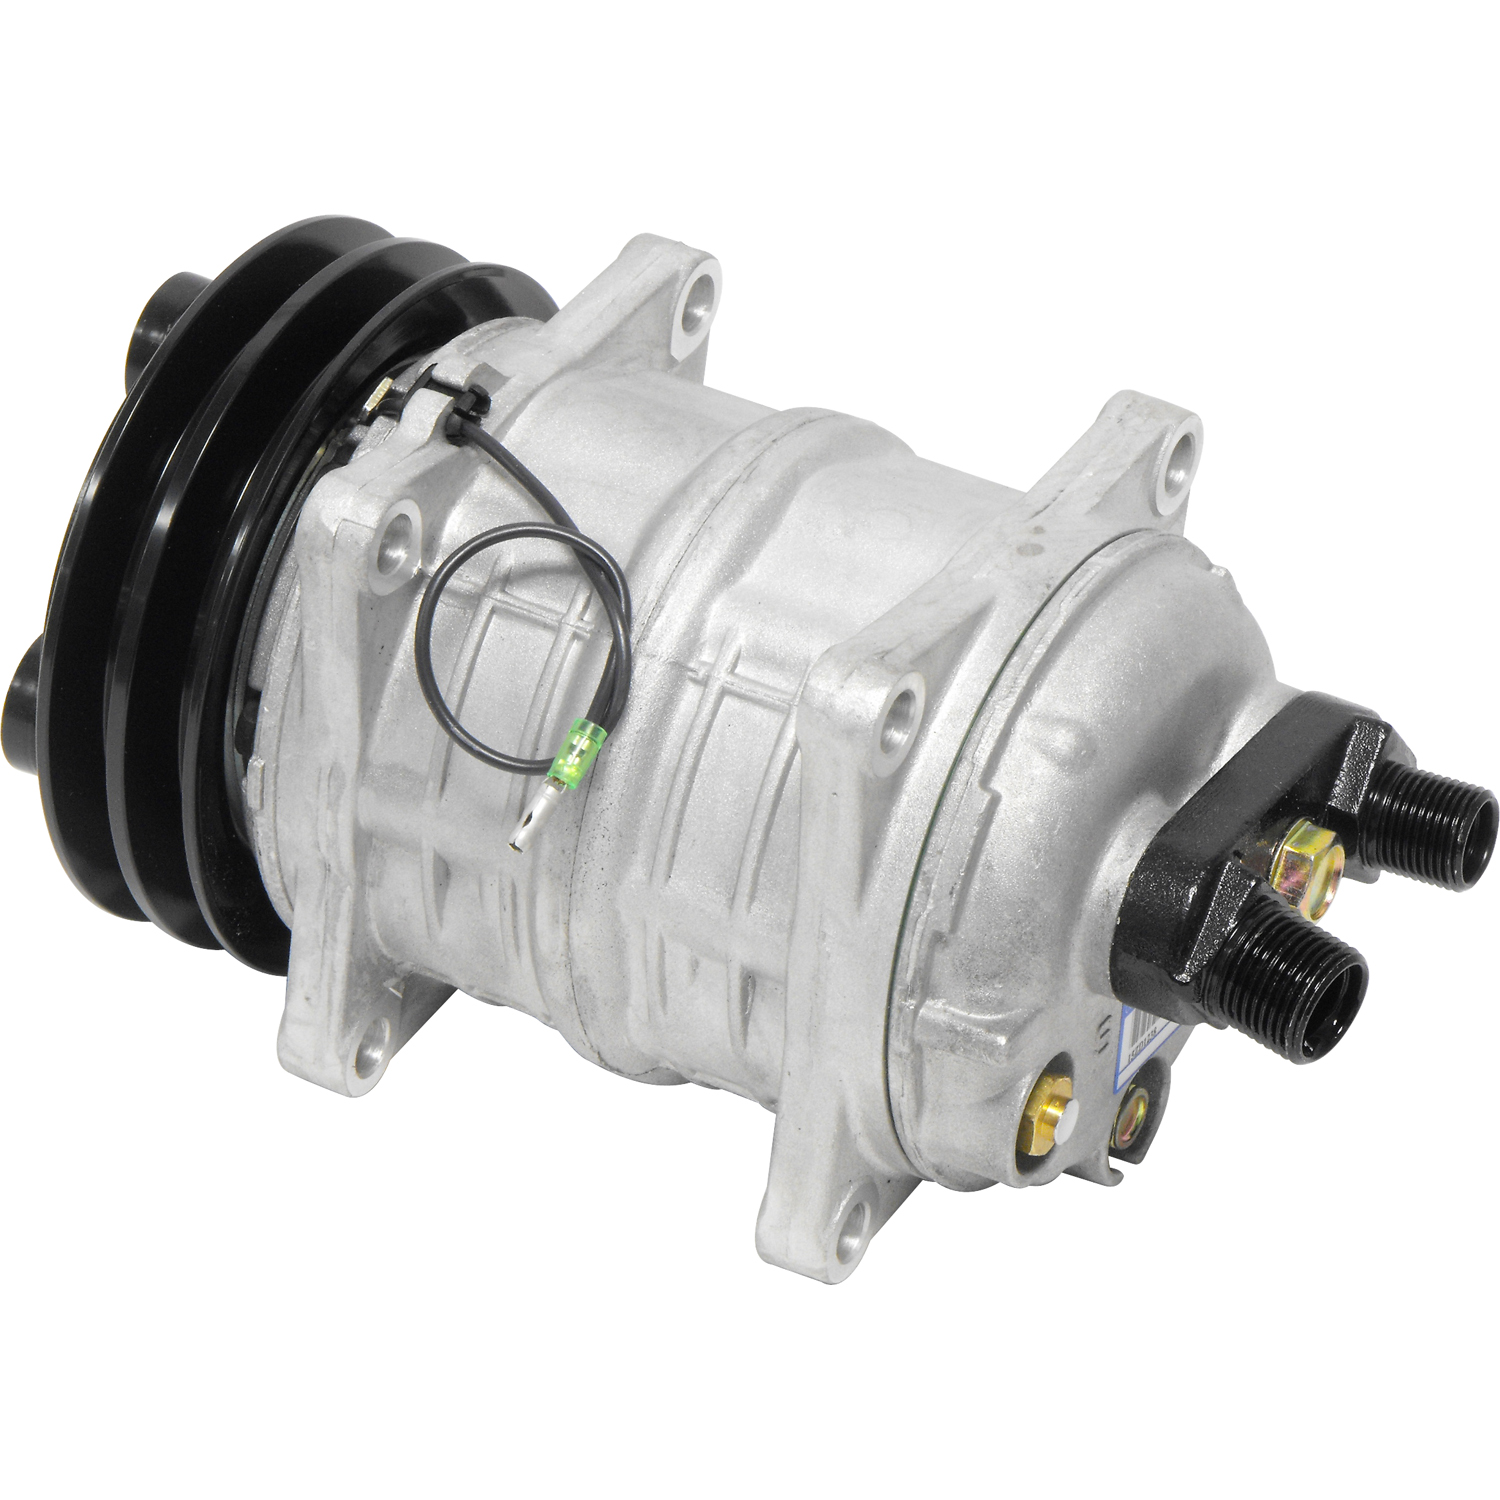 New A/C Compressor and Clutch 1010722 -